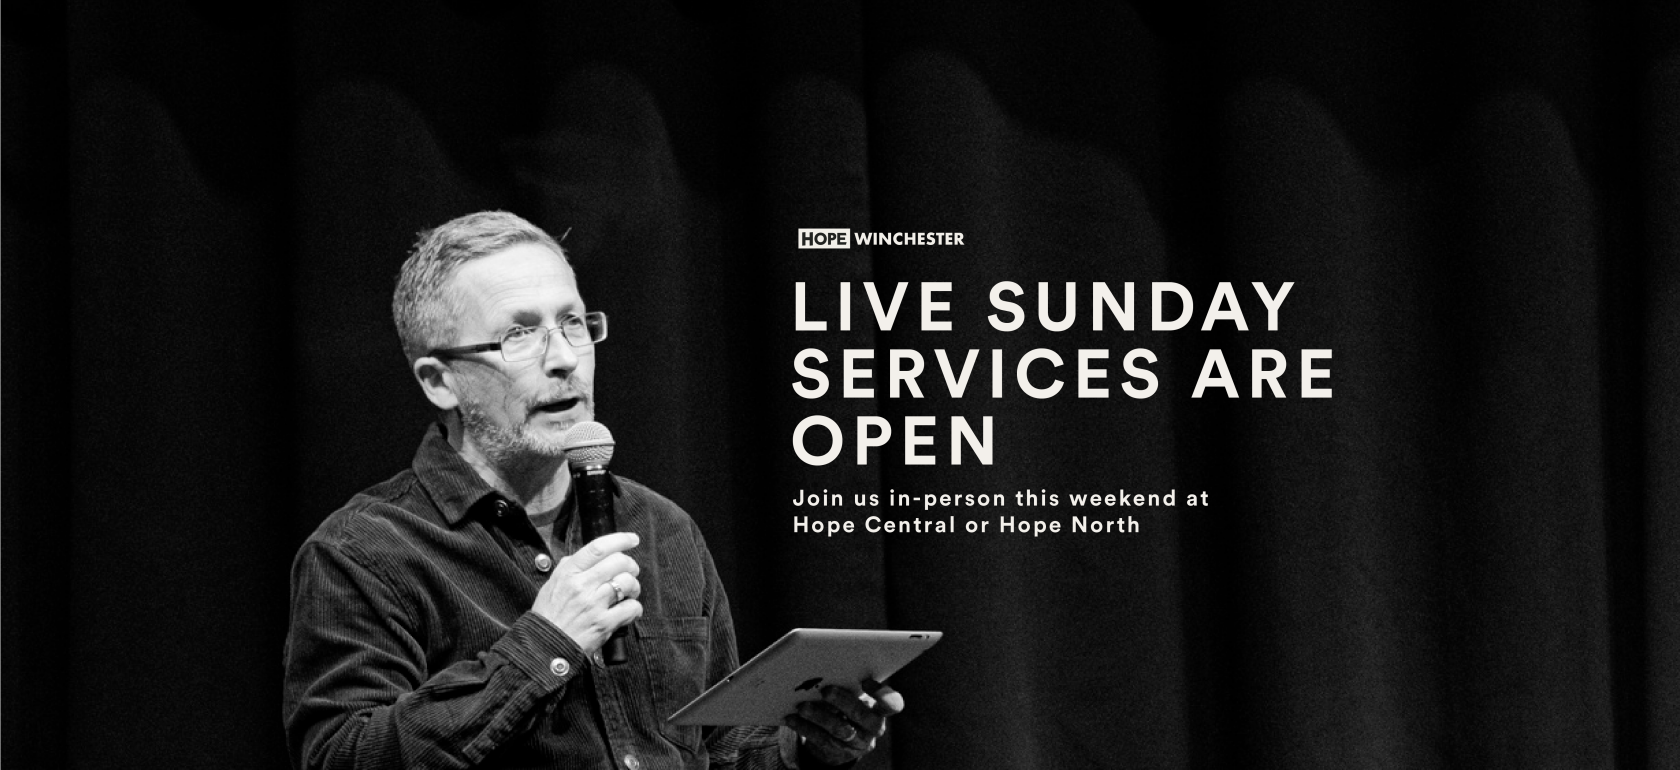 Live-Sunday-Servces-Are-Open-1680x770-1